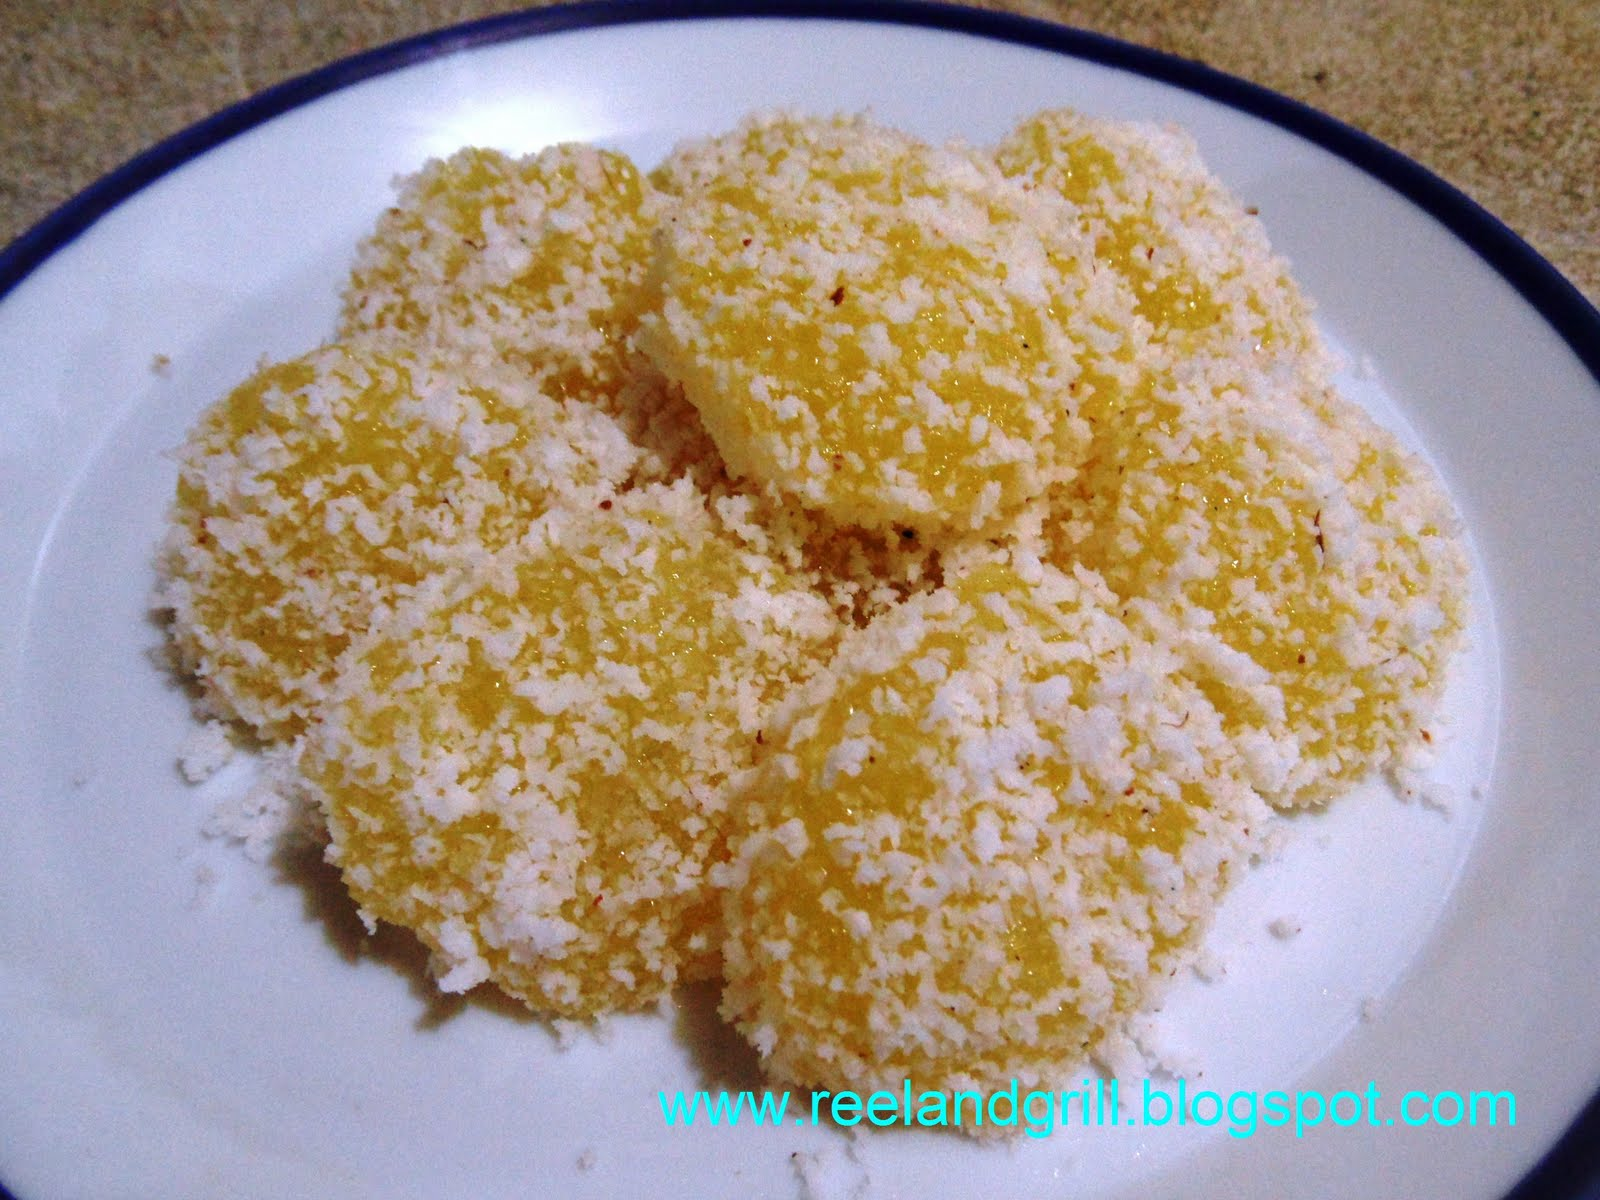 Pichi Pichi (Cassava Pudding with Grated Coconut)